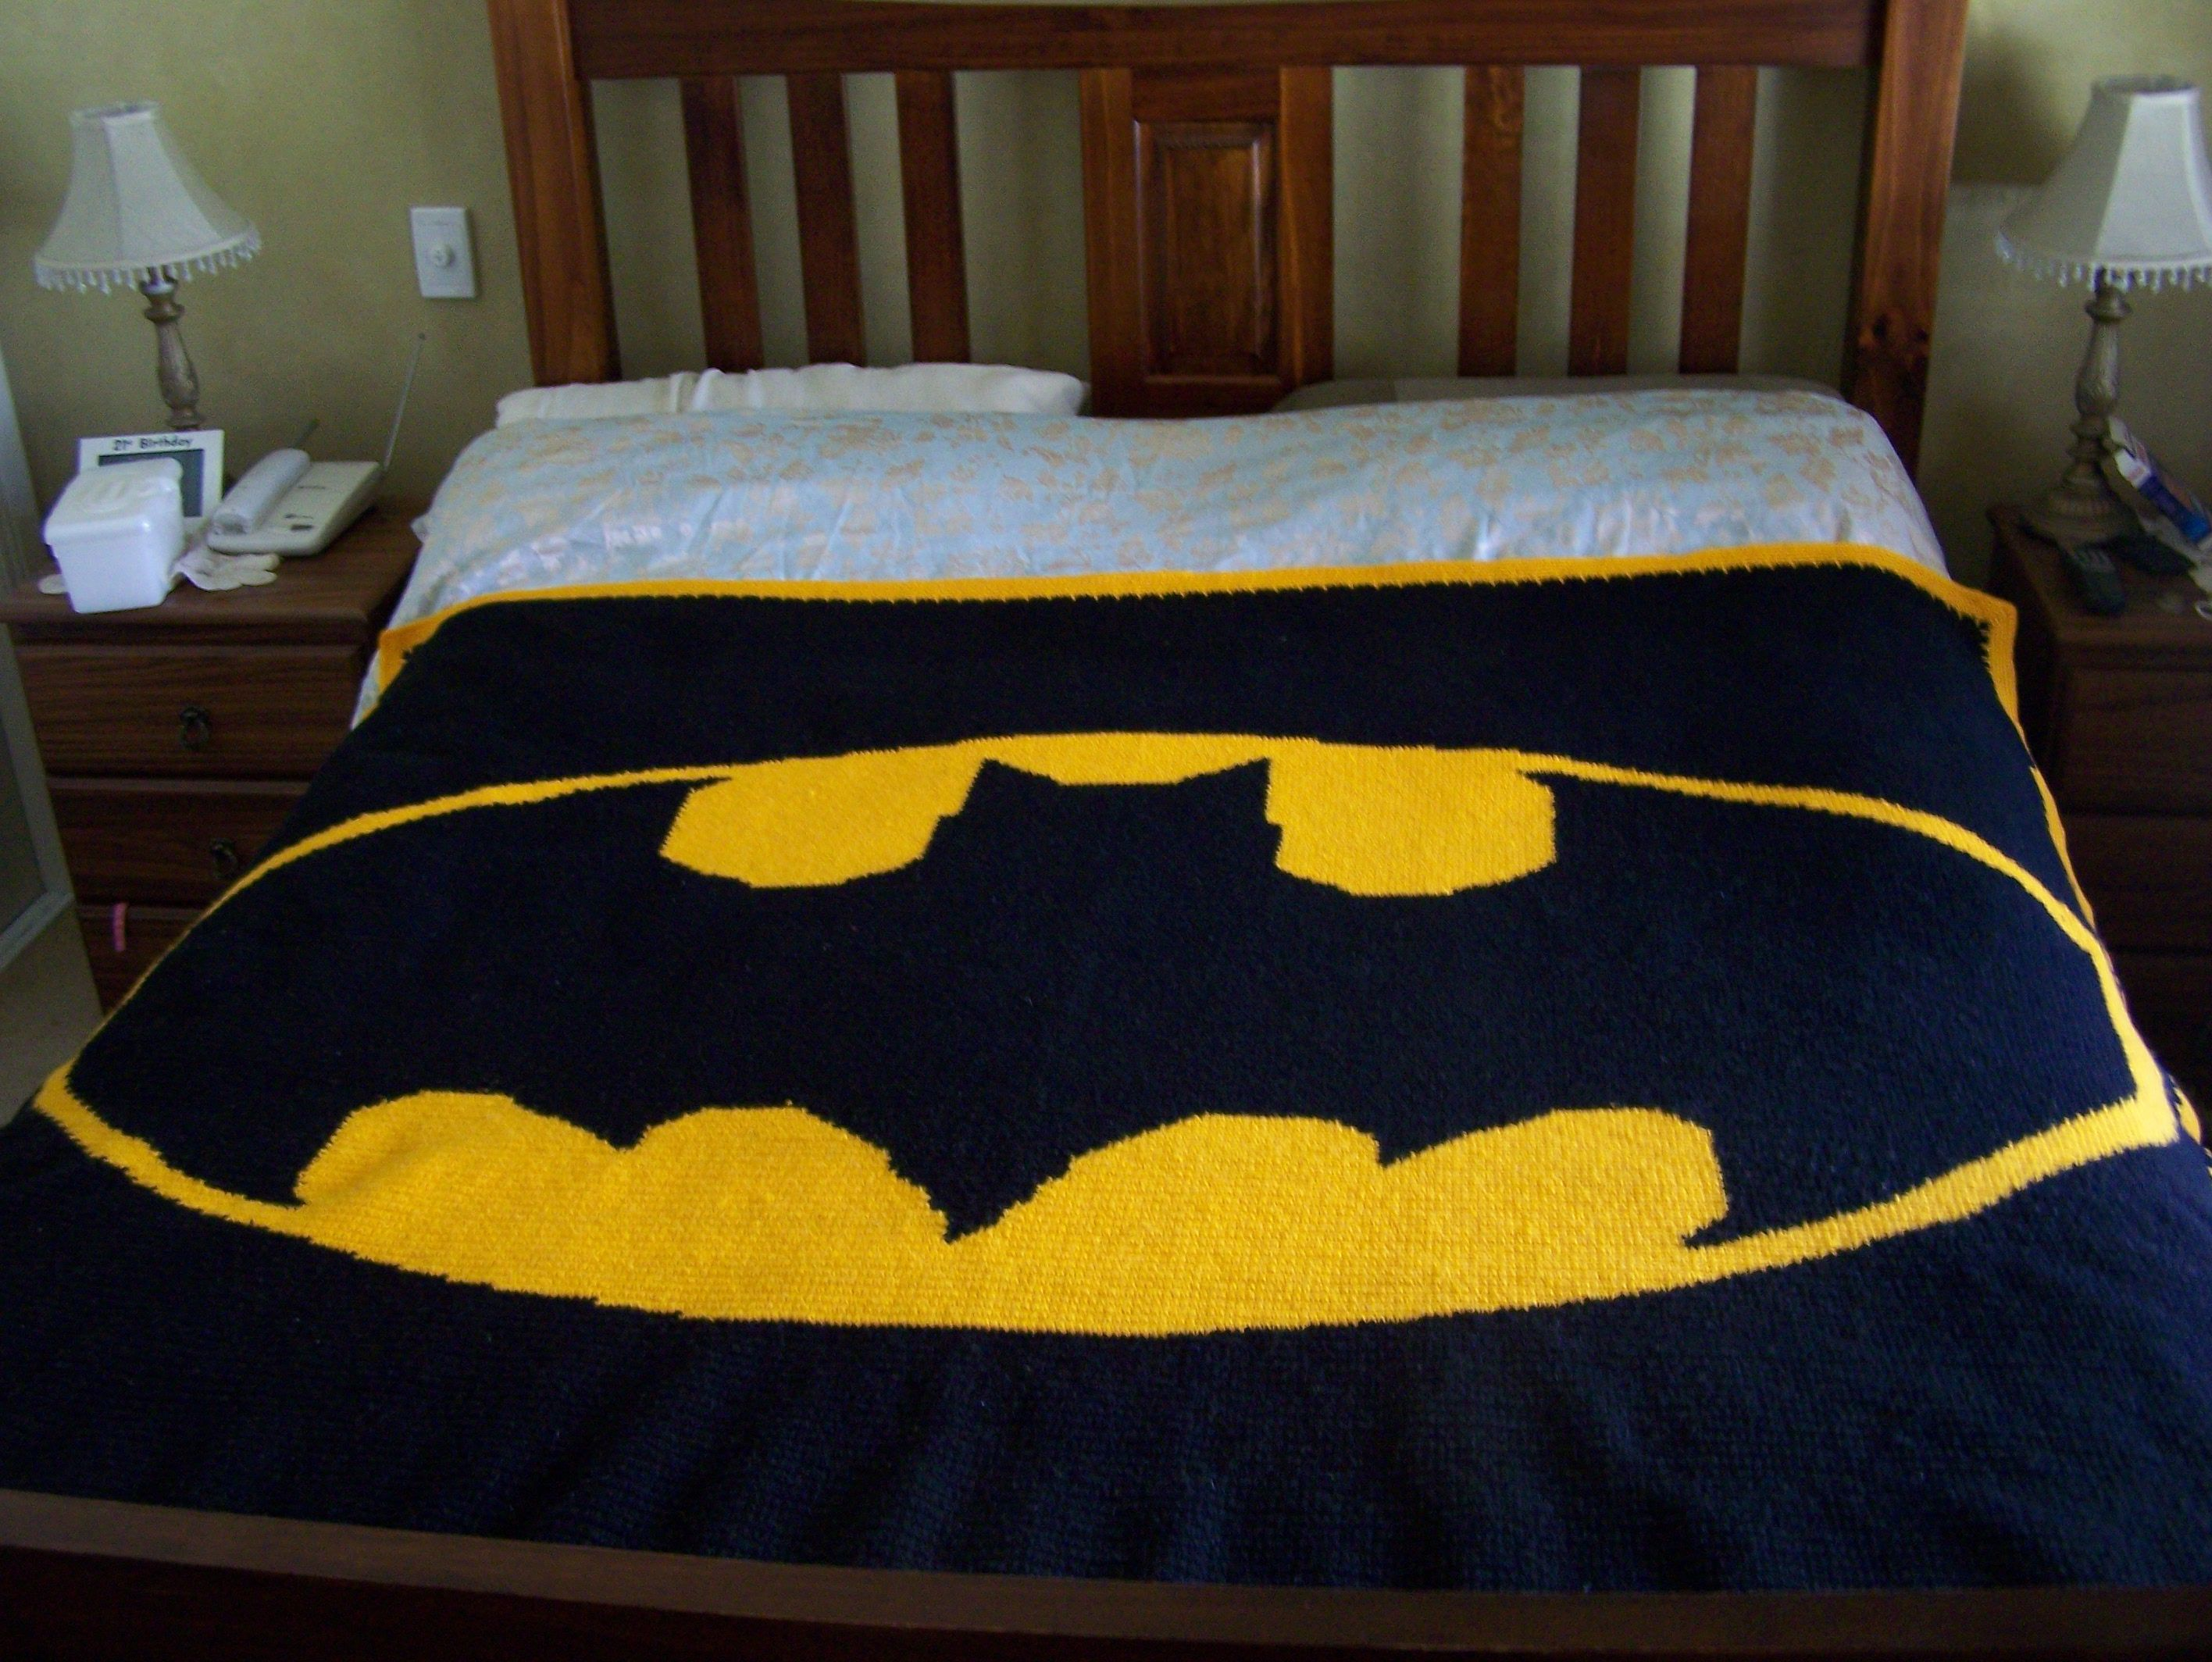 Knitting Pattern For Batman Blanket : Maybe this could be your next crochet project - Crochet ...